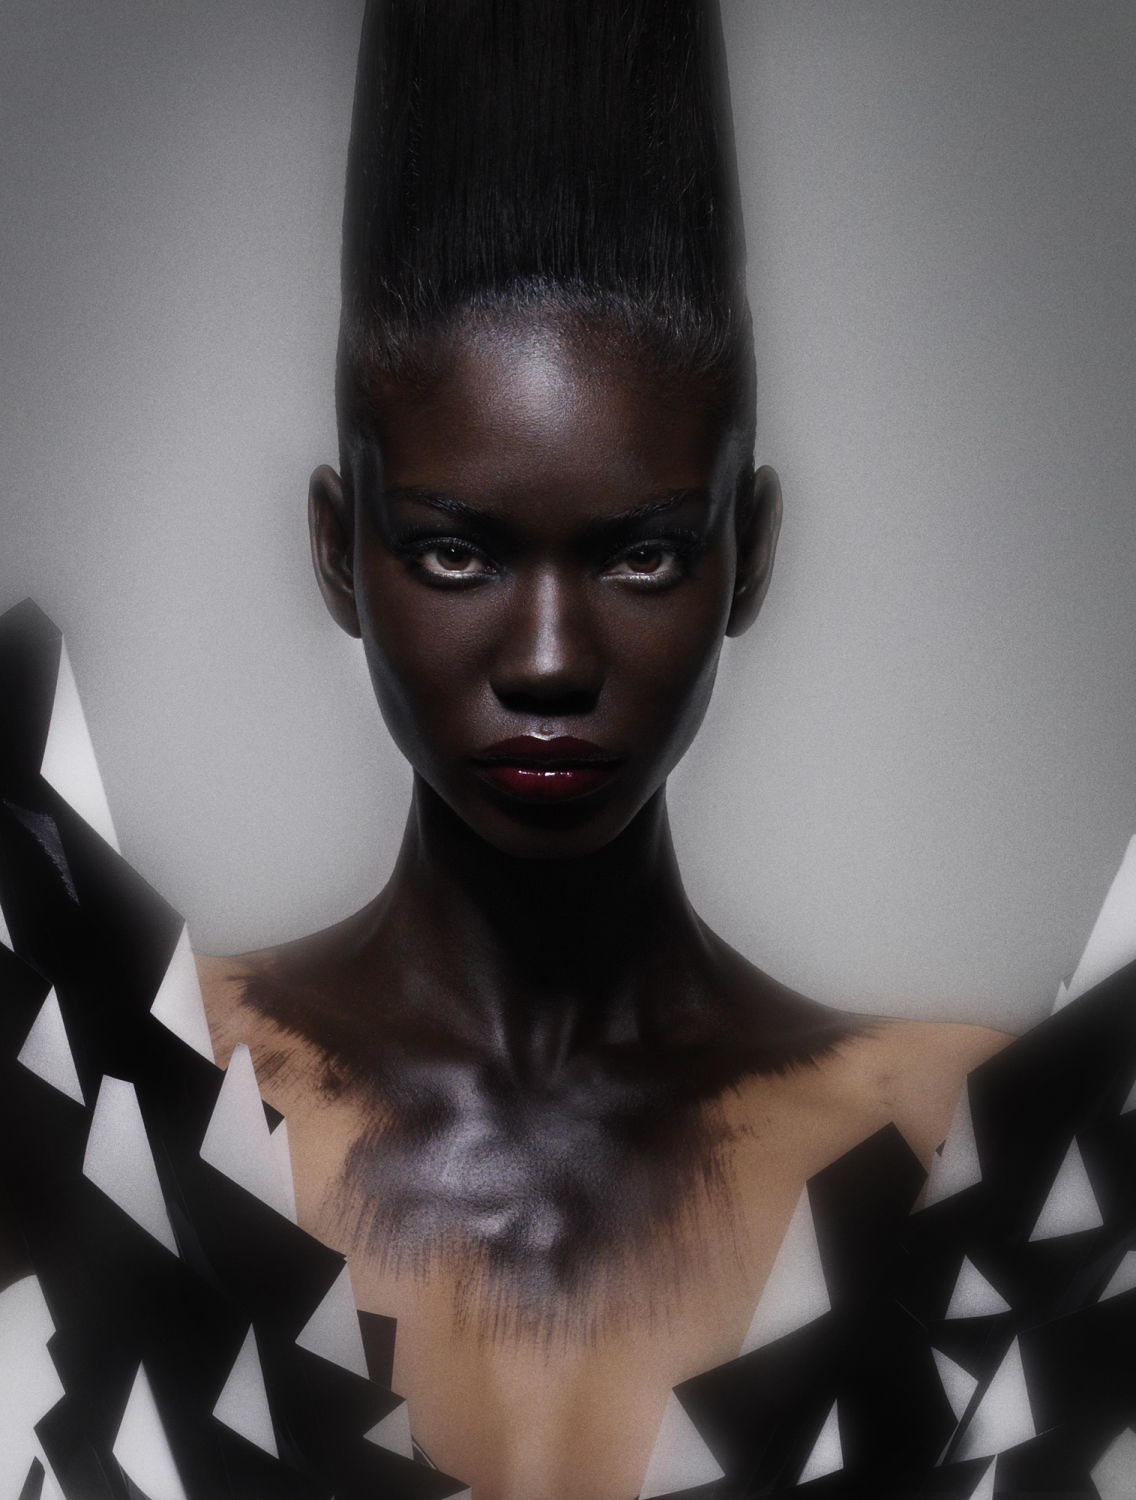 Italian Vogue/The Black issue